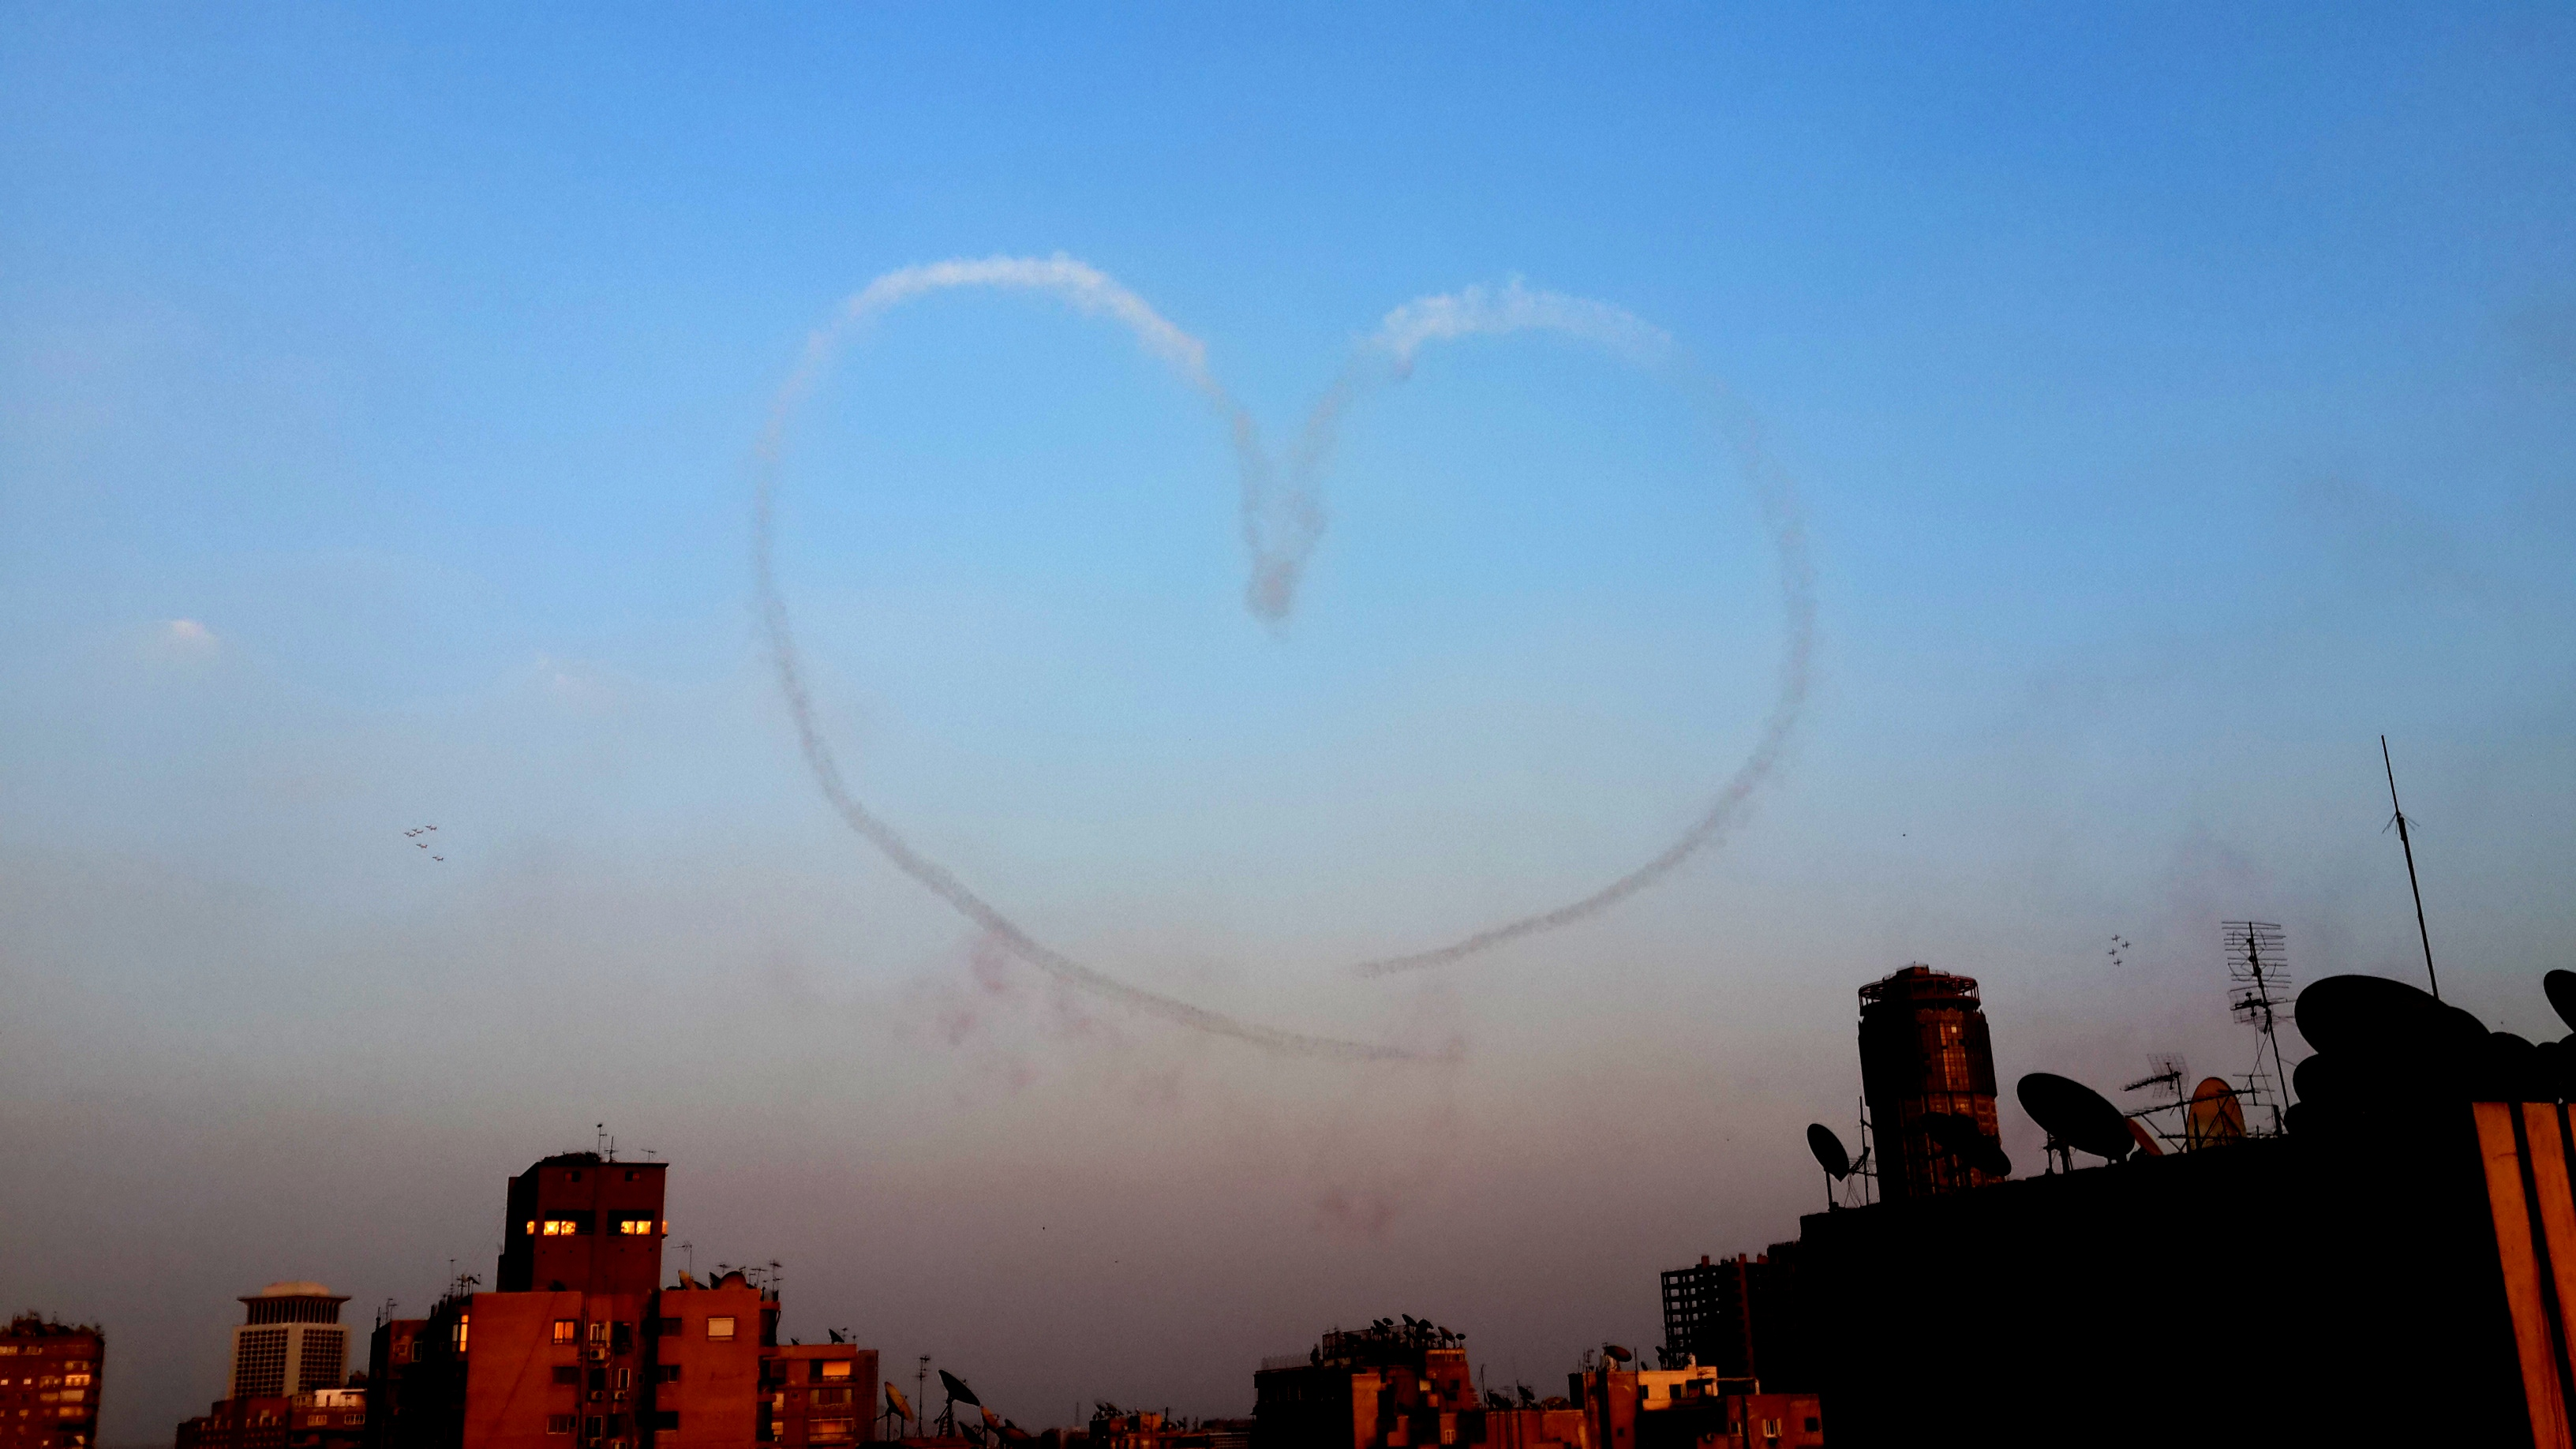 During the air show the planes drew playful messages to the watching public. (Photo by Sara Abou Bakr)